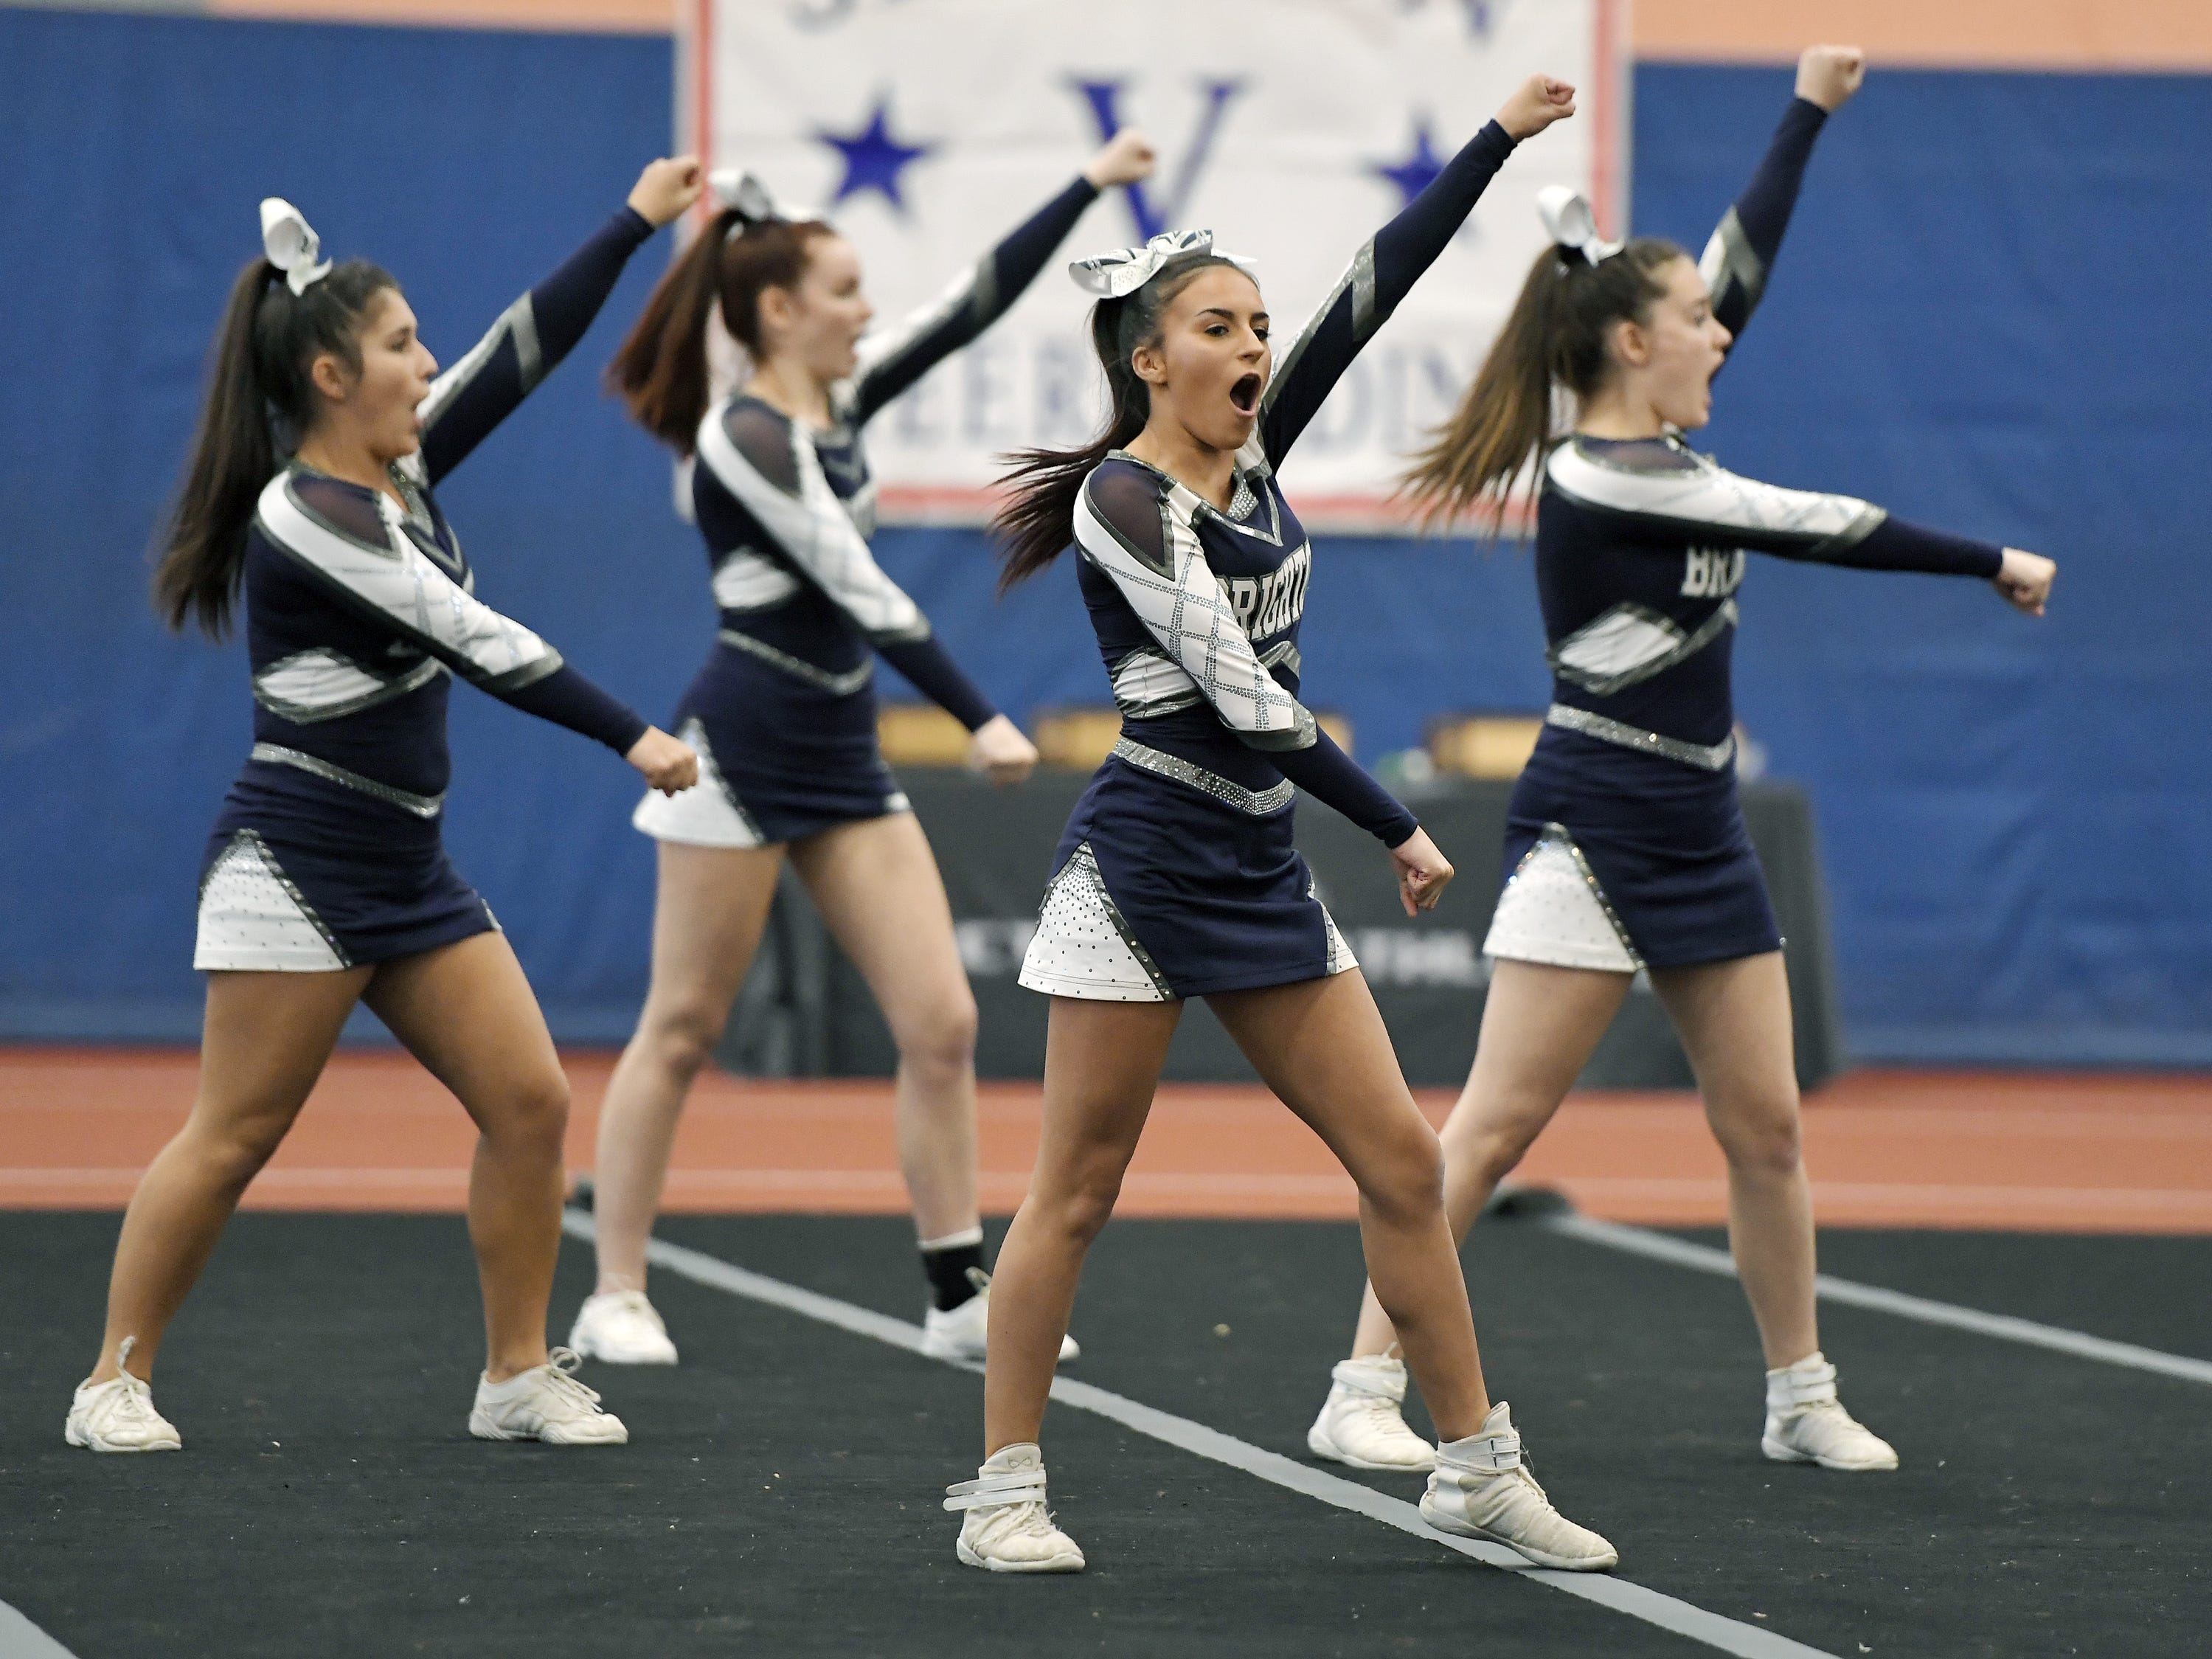 Brighton cheerleaders perform their routine during the Section V Fall Cheerleading Championships at RIT, Saturday, Oct. 27, 2018.